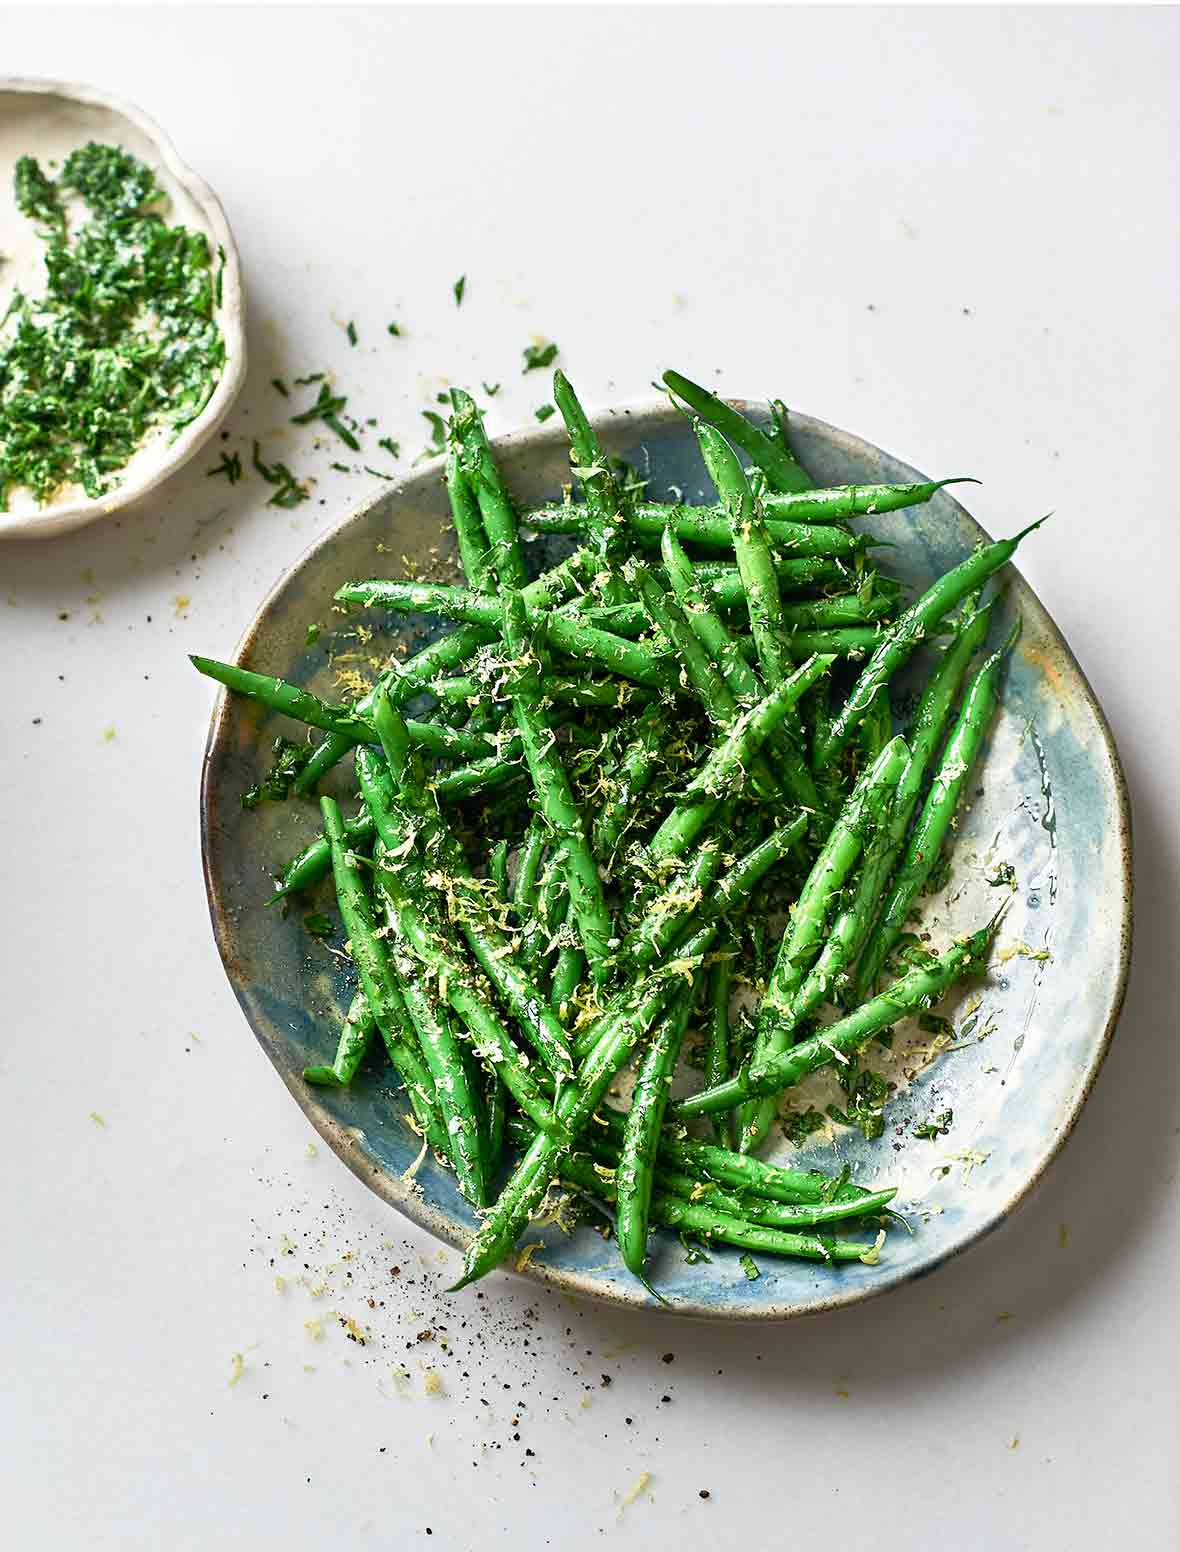 A serving platter piled with green beans and sprinkled with gremolata. A small dish of gremolata sits beside the serving plate.